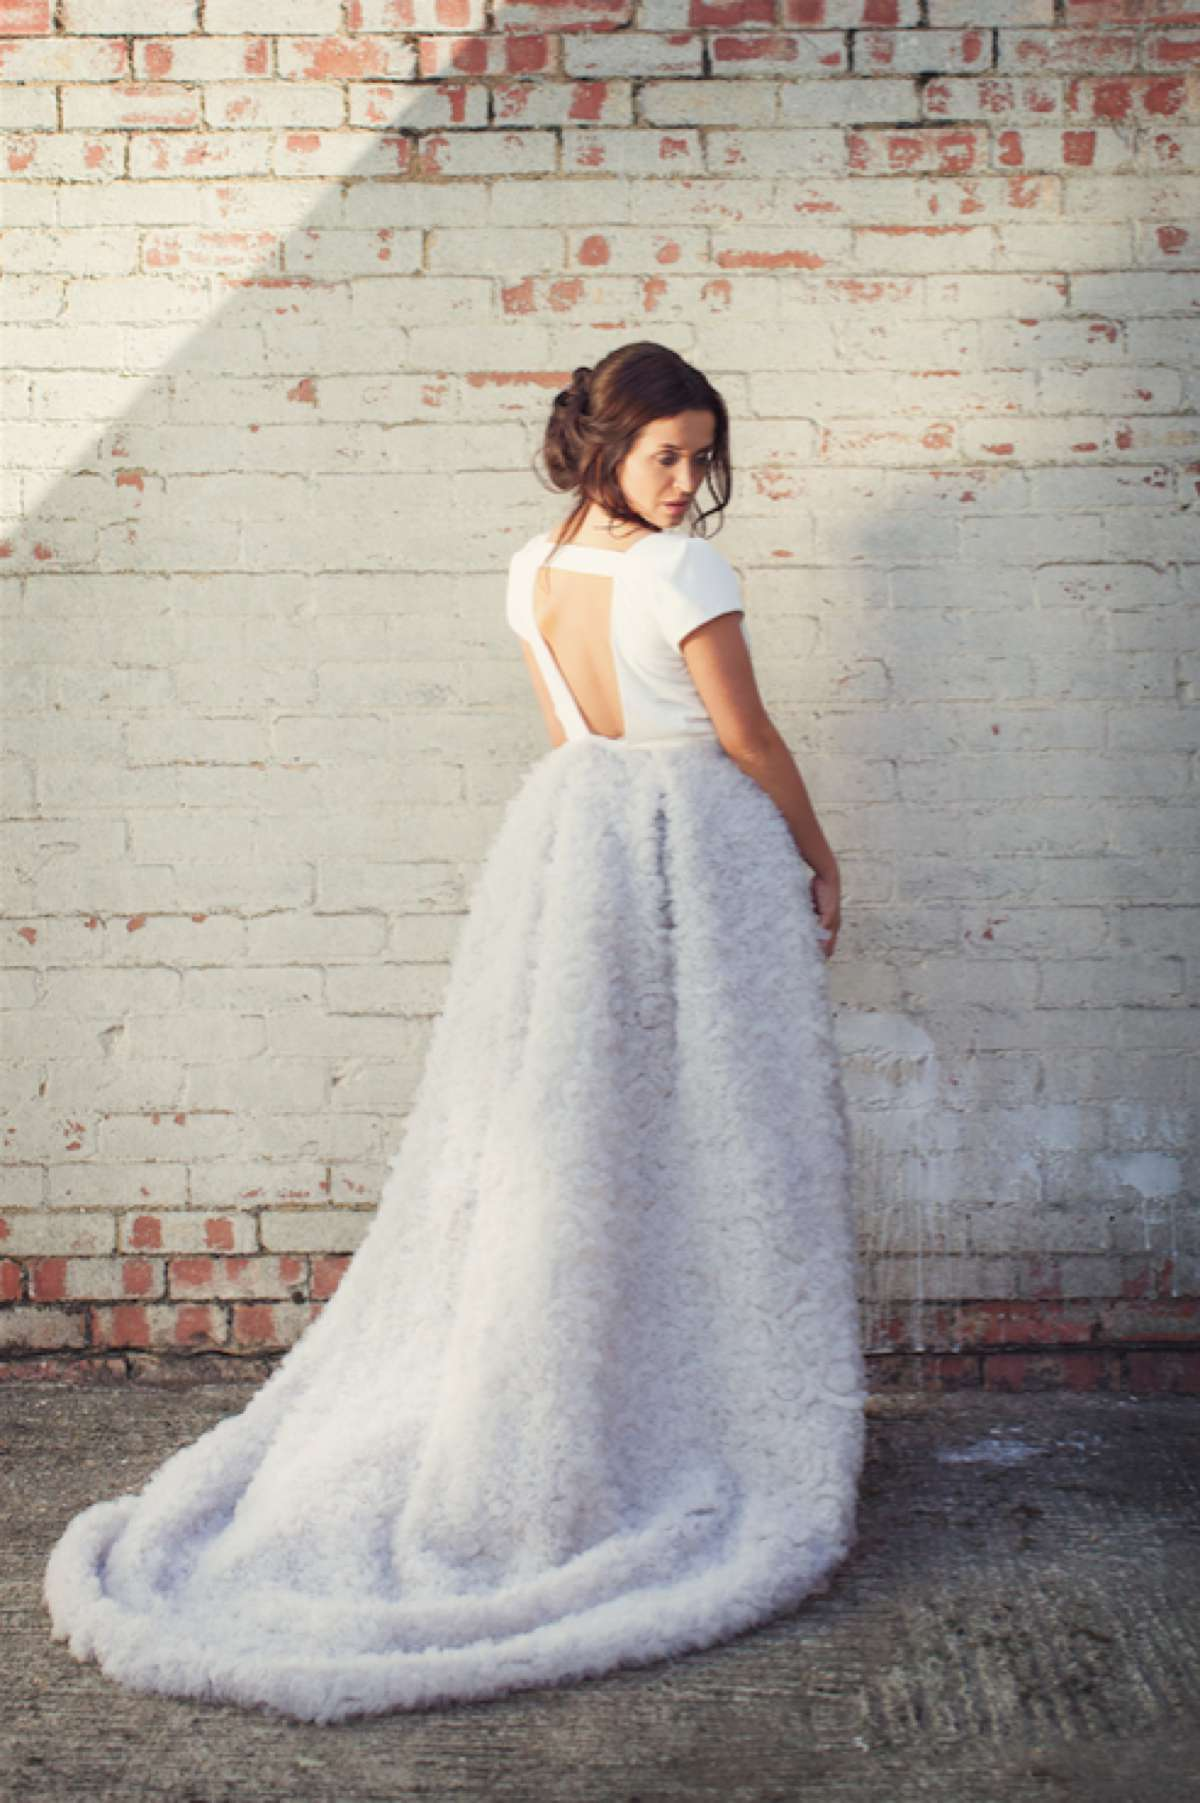 Bespoke bridal gowns from emily victoria white love our wedding bespoke bridal gowns from emily victoria white ombrellifo Images